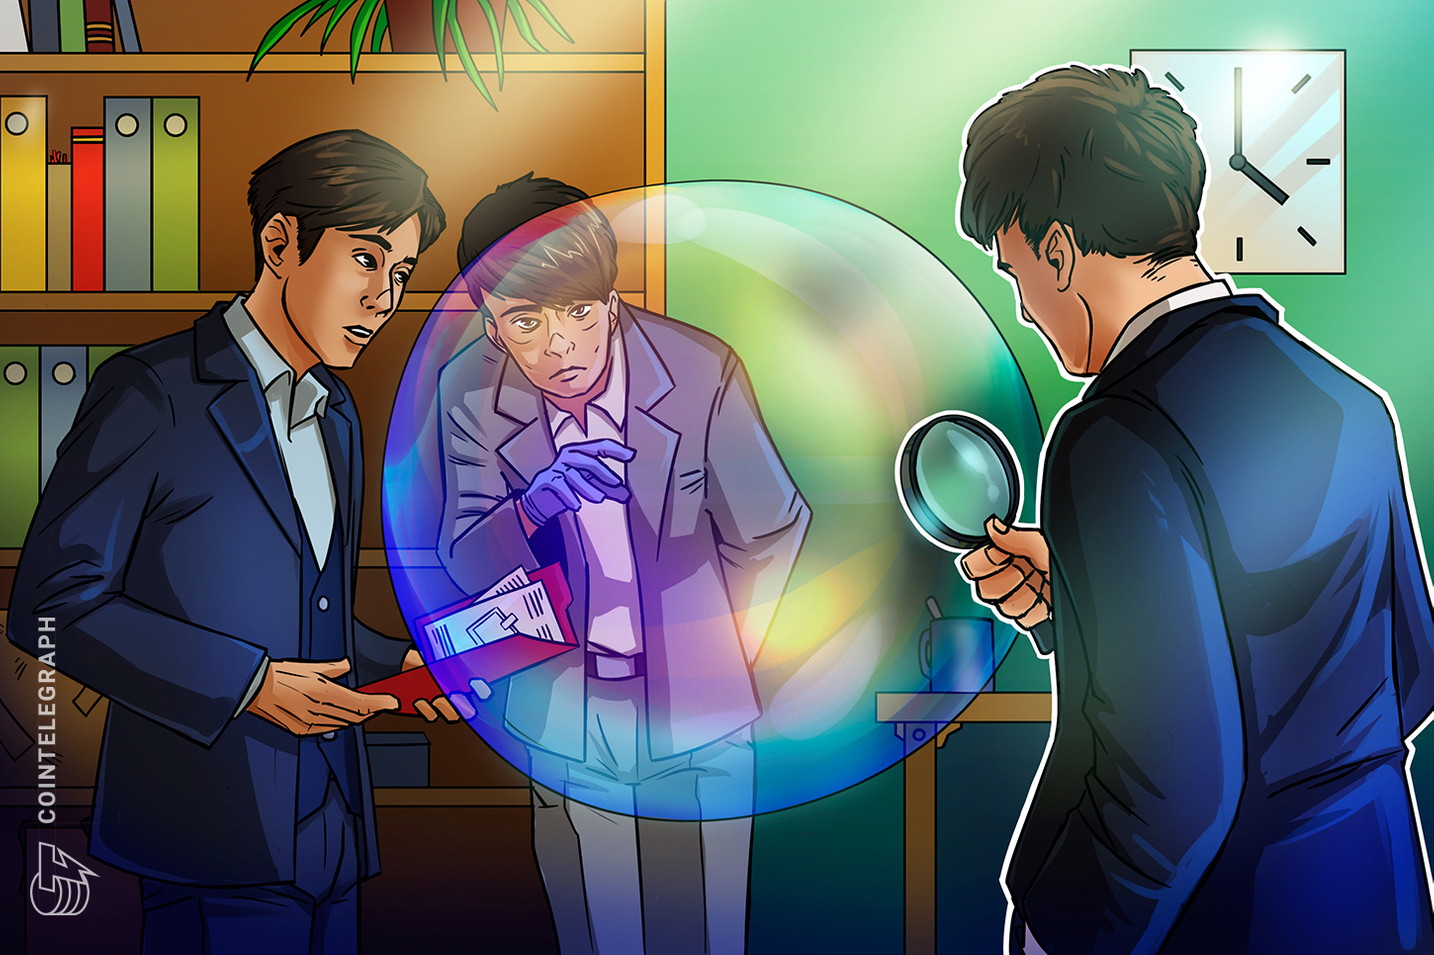 Investors Defrauded by South Korean Pyramid Scheme